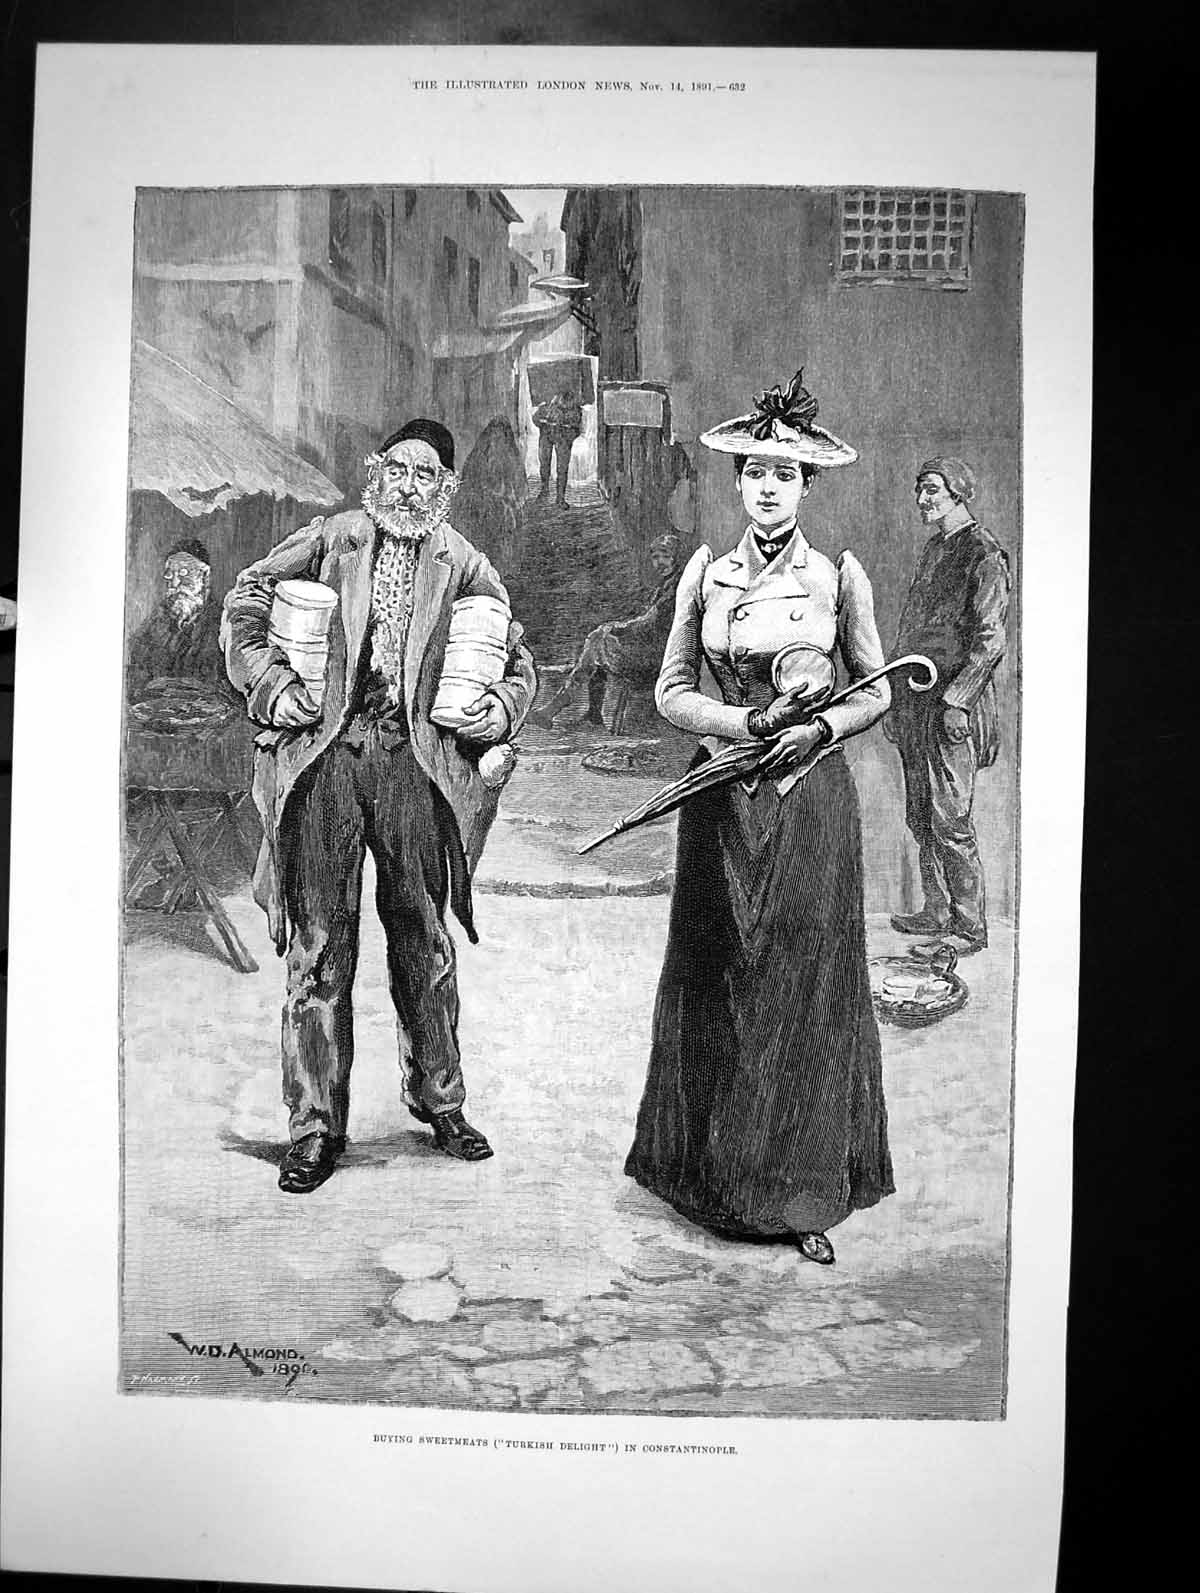 Antique-Old-Print-Buying-Sweethearts-Turkish-Delight-In-Constantinople-1891